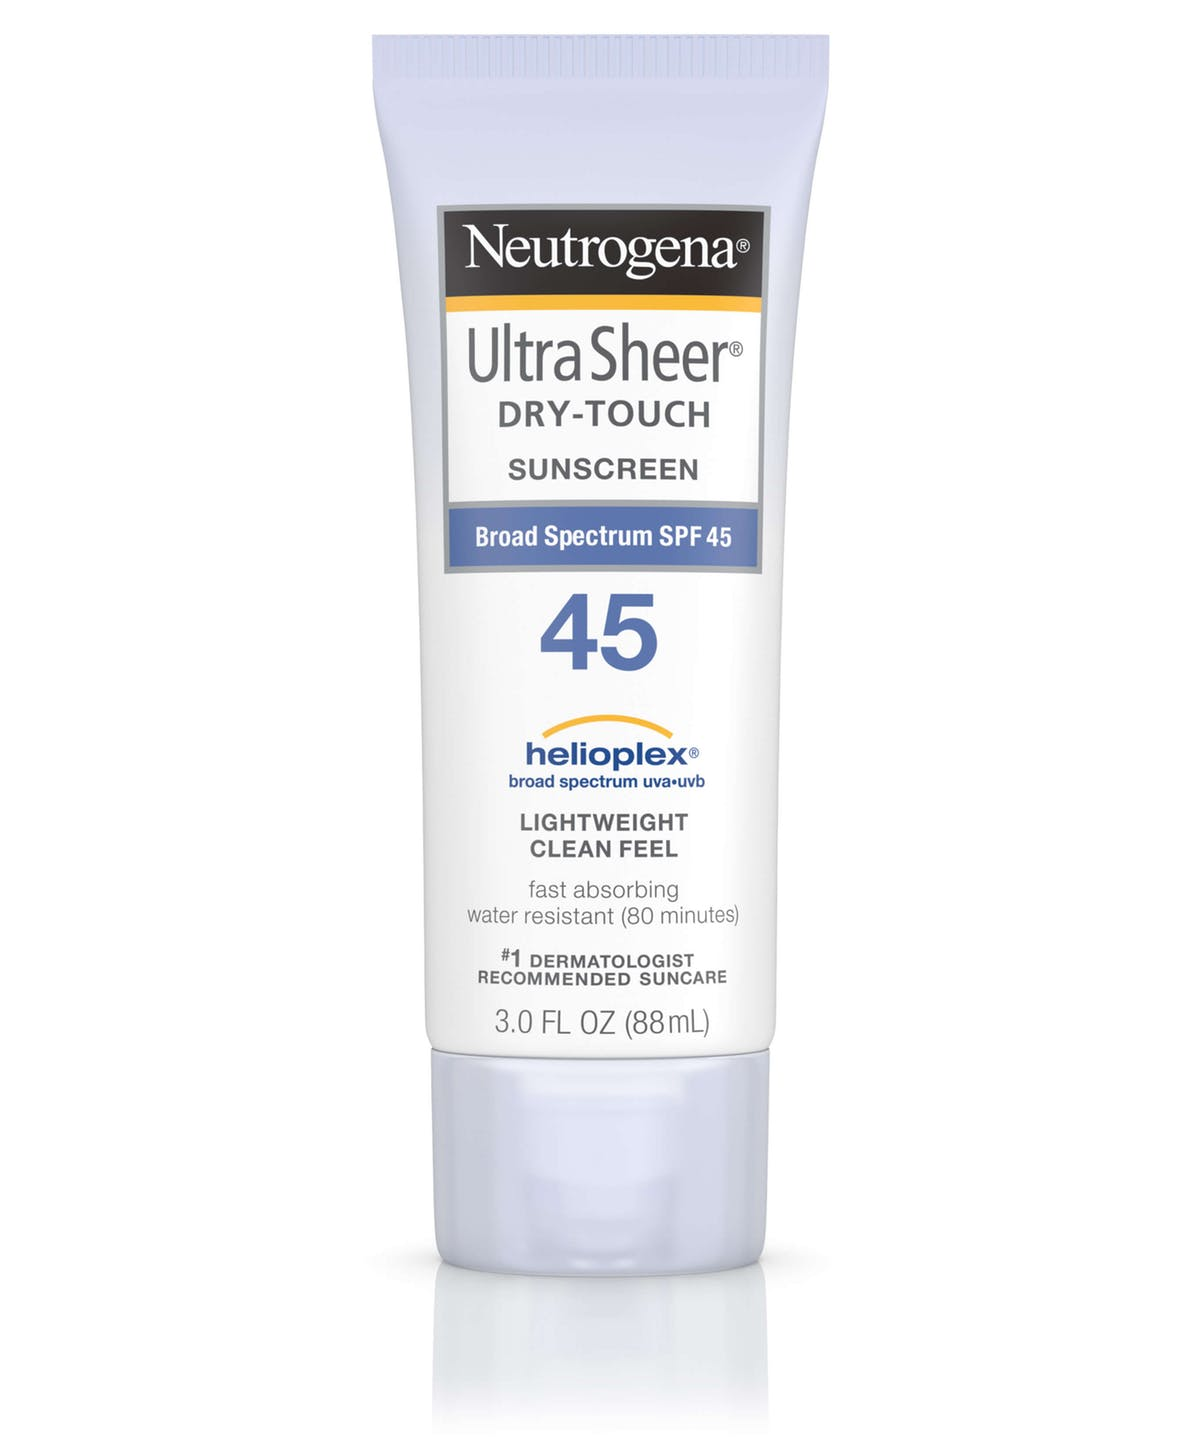 NTG_86800687955_30029180_Ultra_Sheer_Dry_Touch_Sunscreen_SPF45_3oz0.jpg